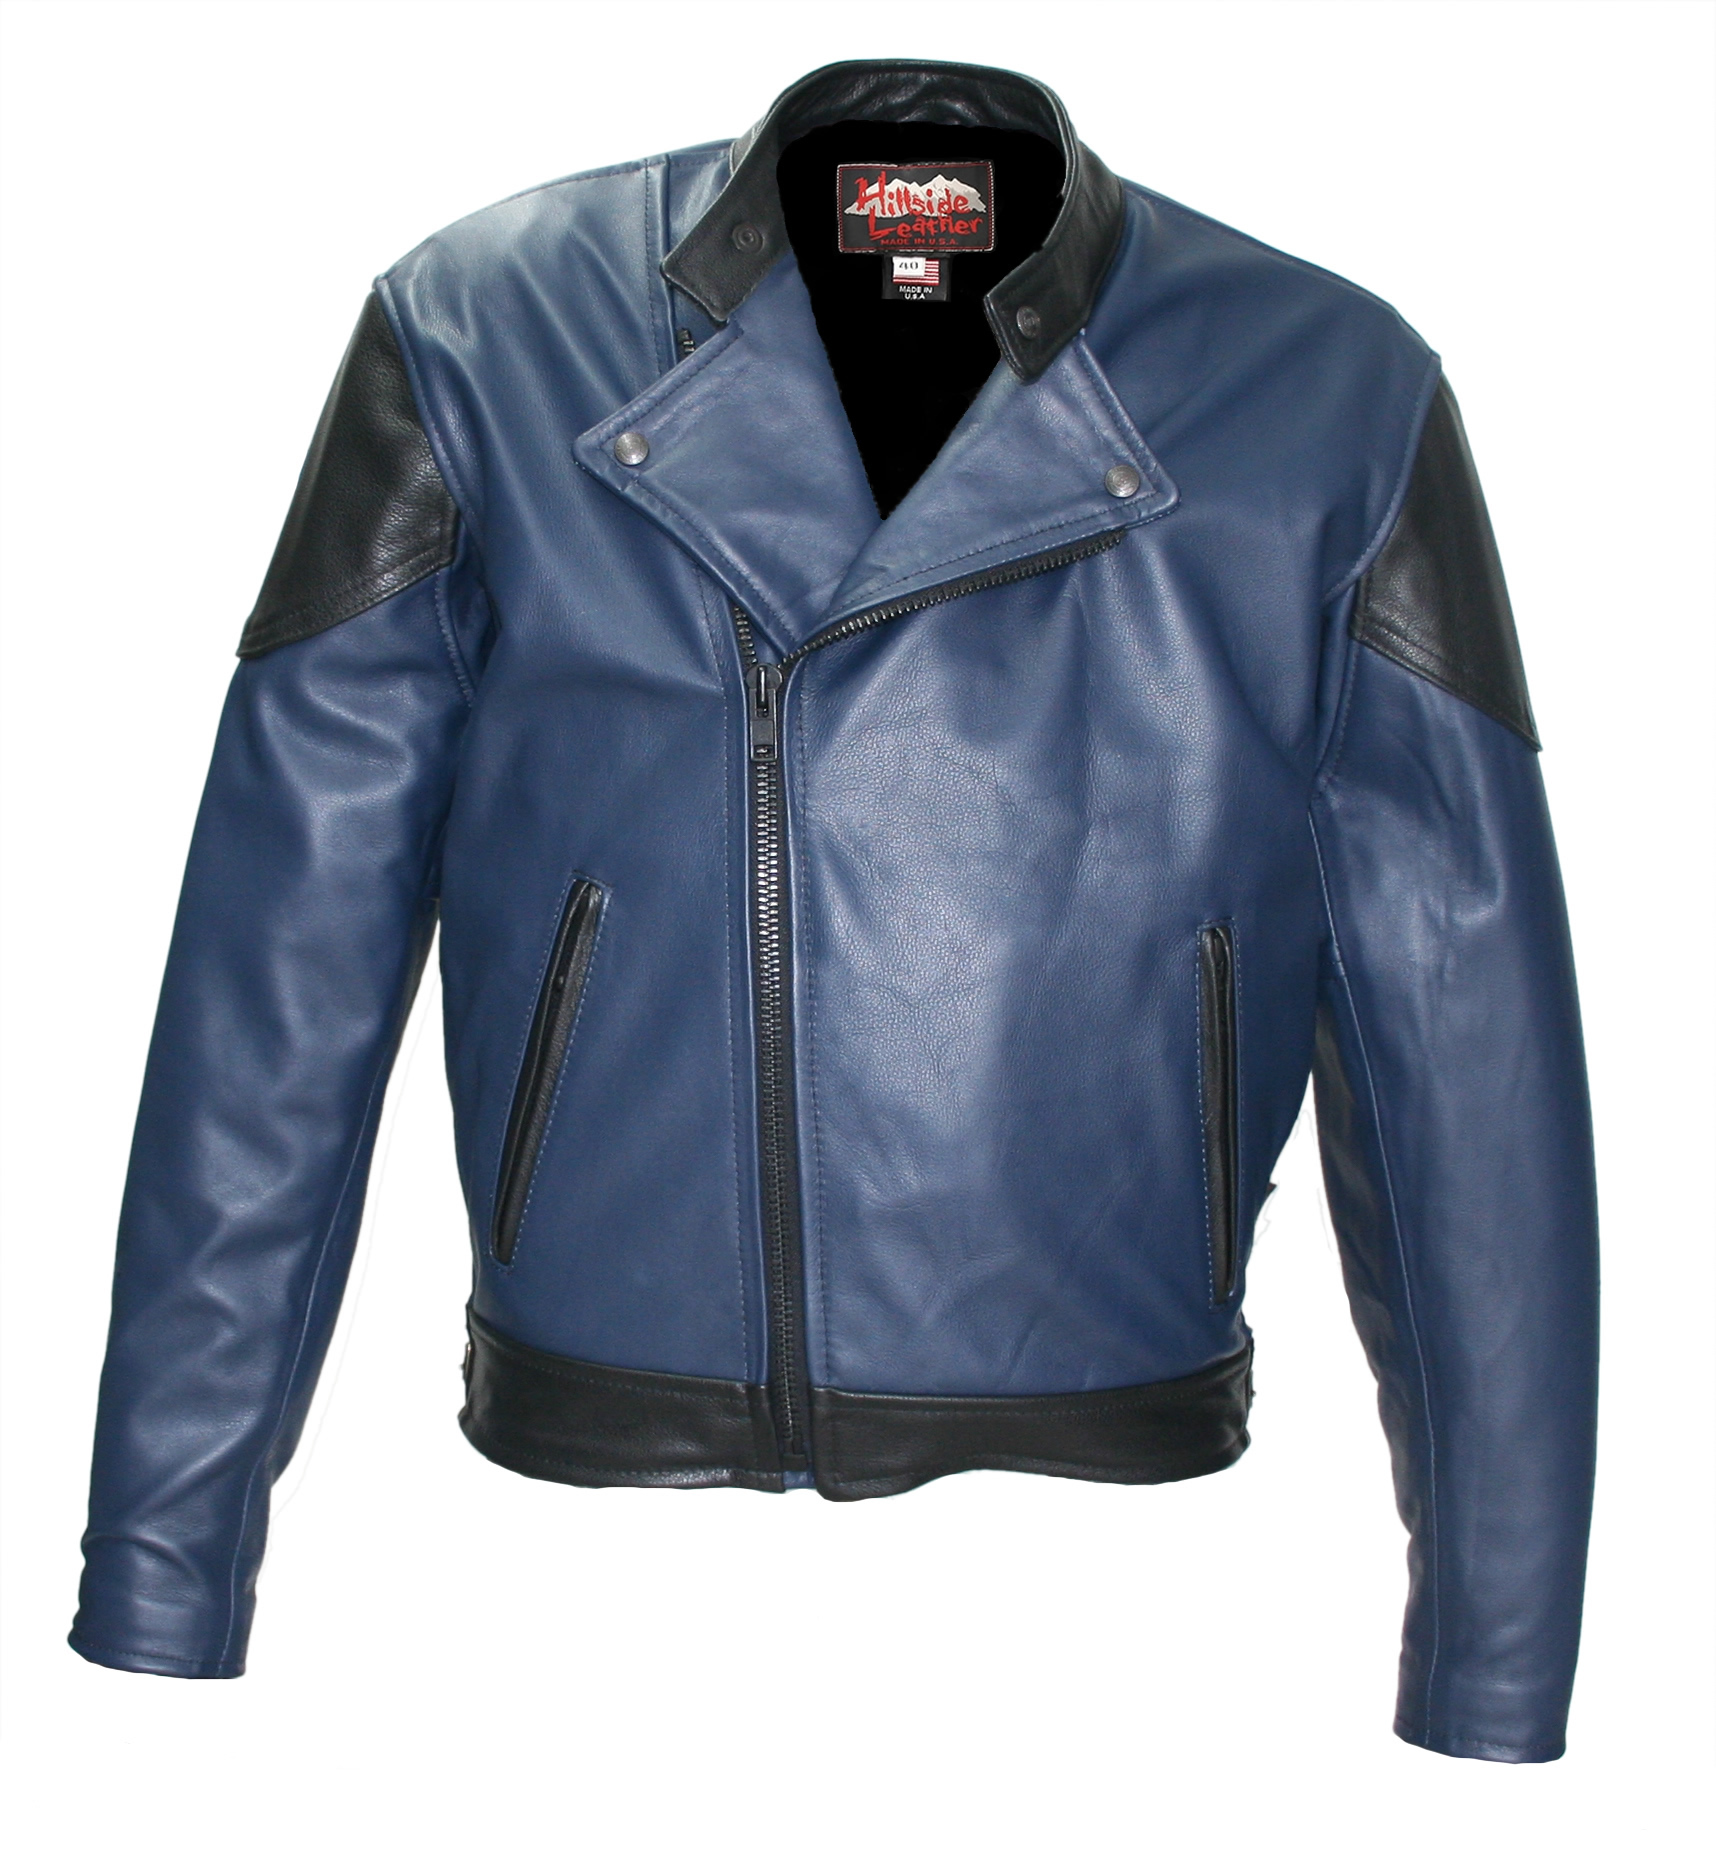 5ffcecd90 Hillside Leather - Custom Motorcycle Leather Jackets, Chaps, and ...